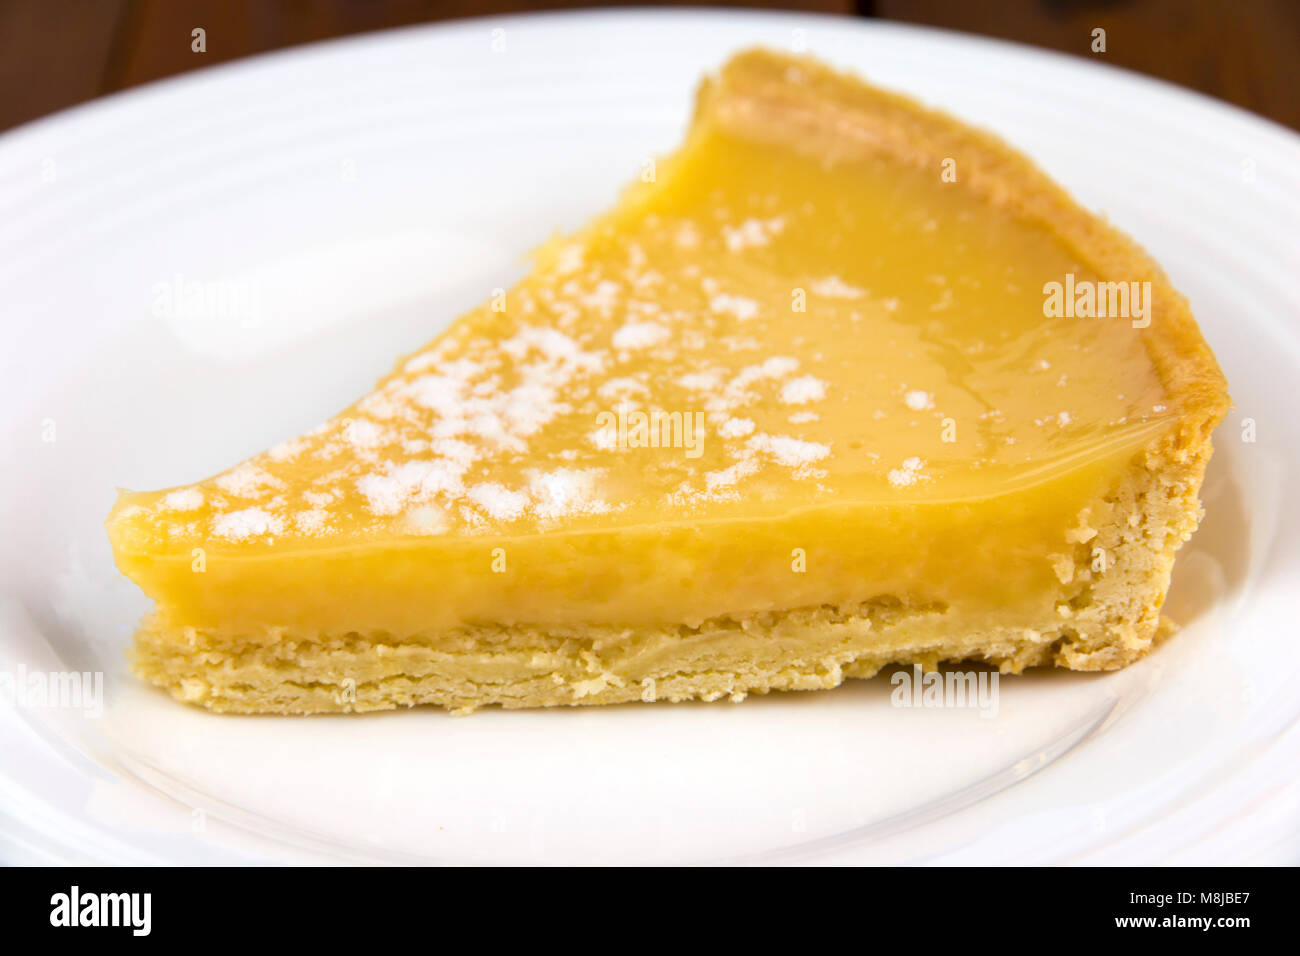 Lemon tart slice on a white plate with a shallow depth of field - Stock Image